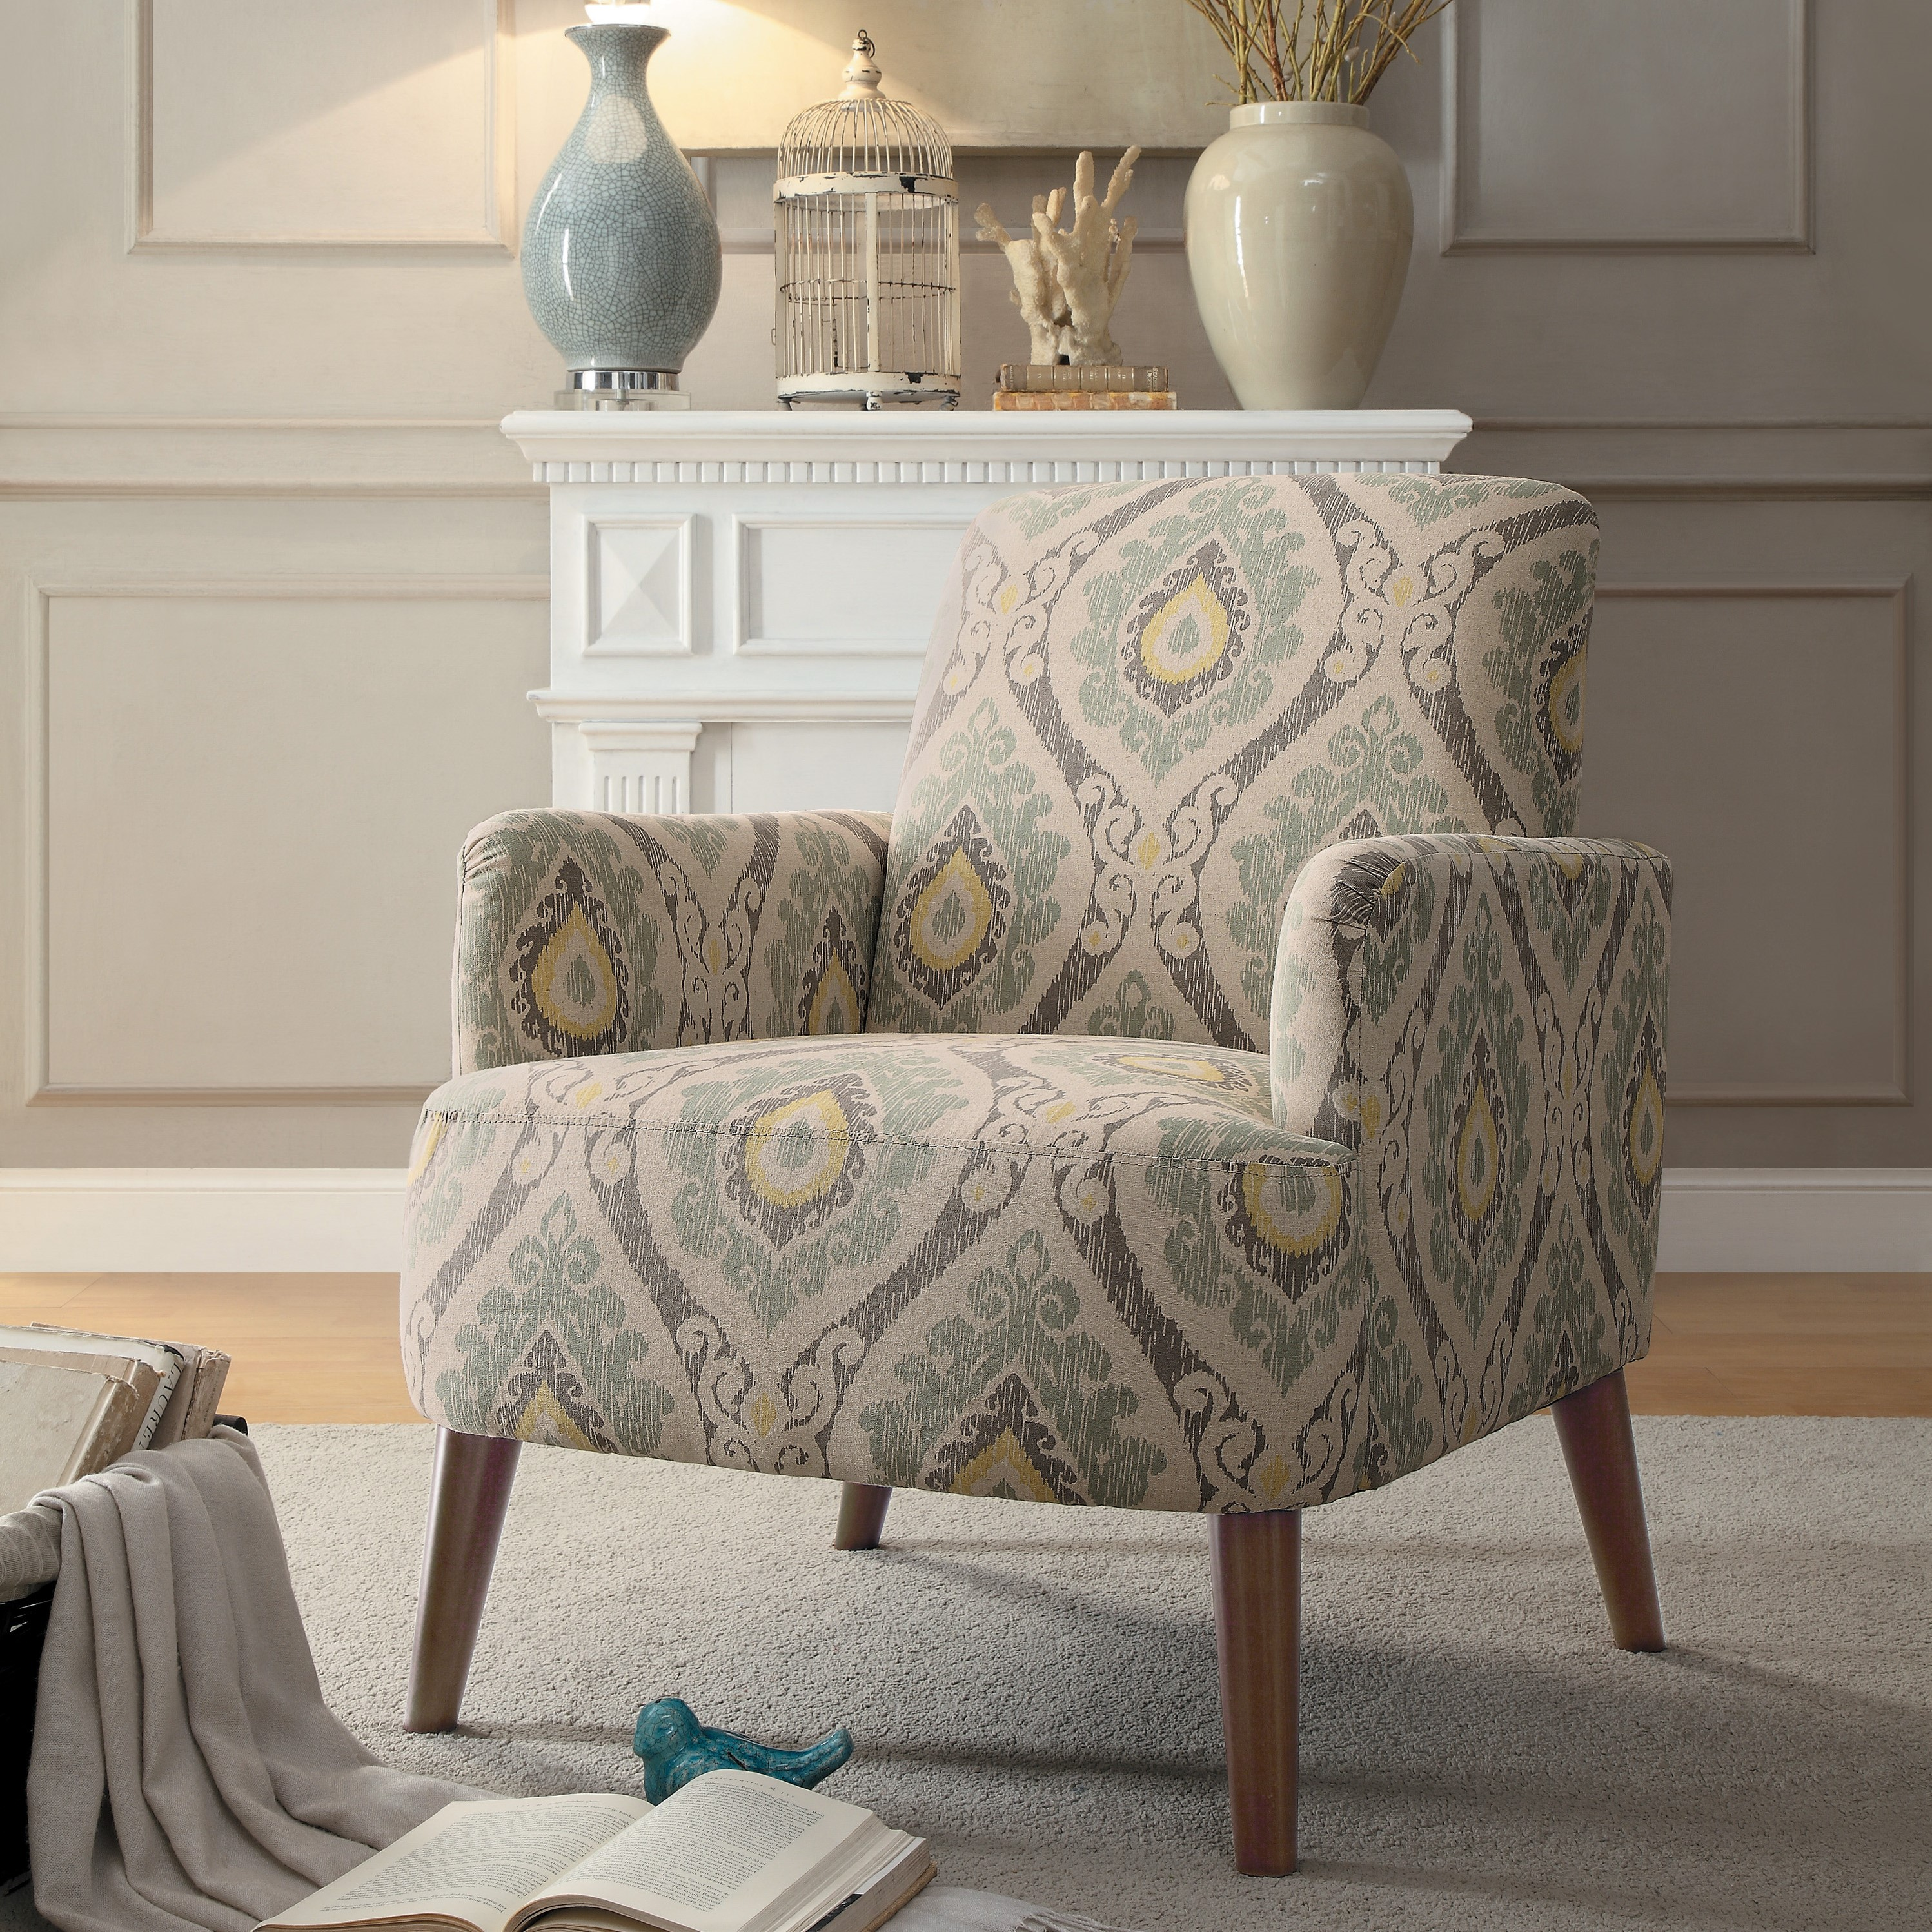 Roper accent chair, Muted dusky-hued ikat-inspired print